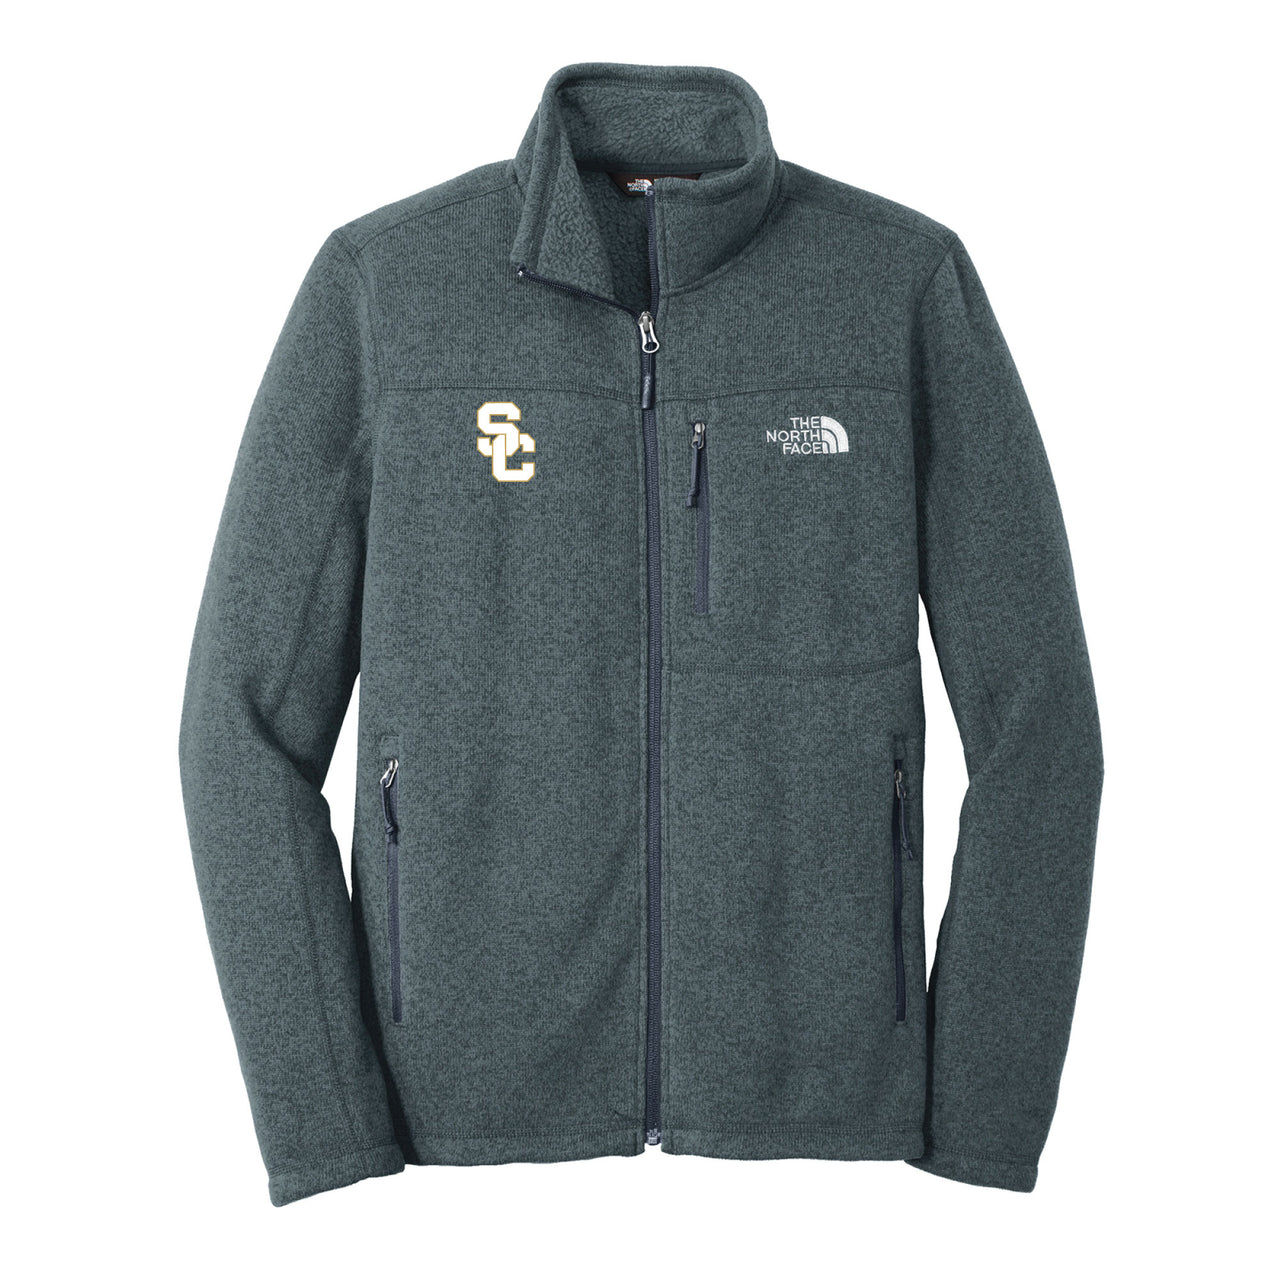 The North Face Mens Sweater Fleece Jacket